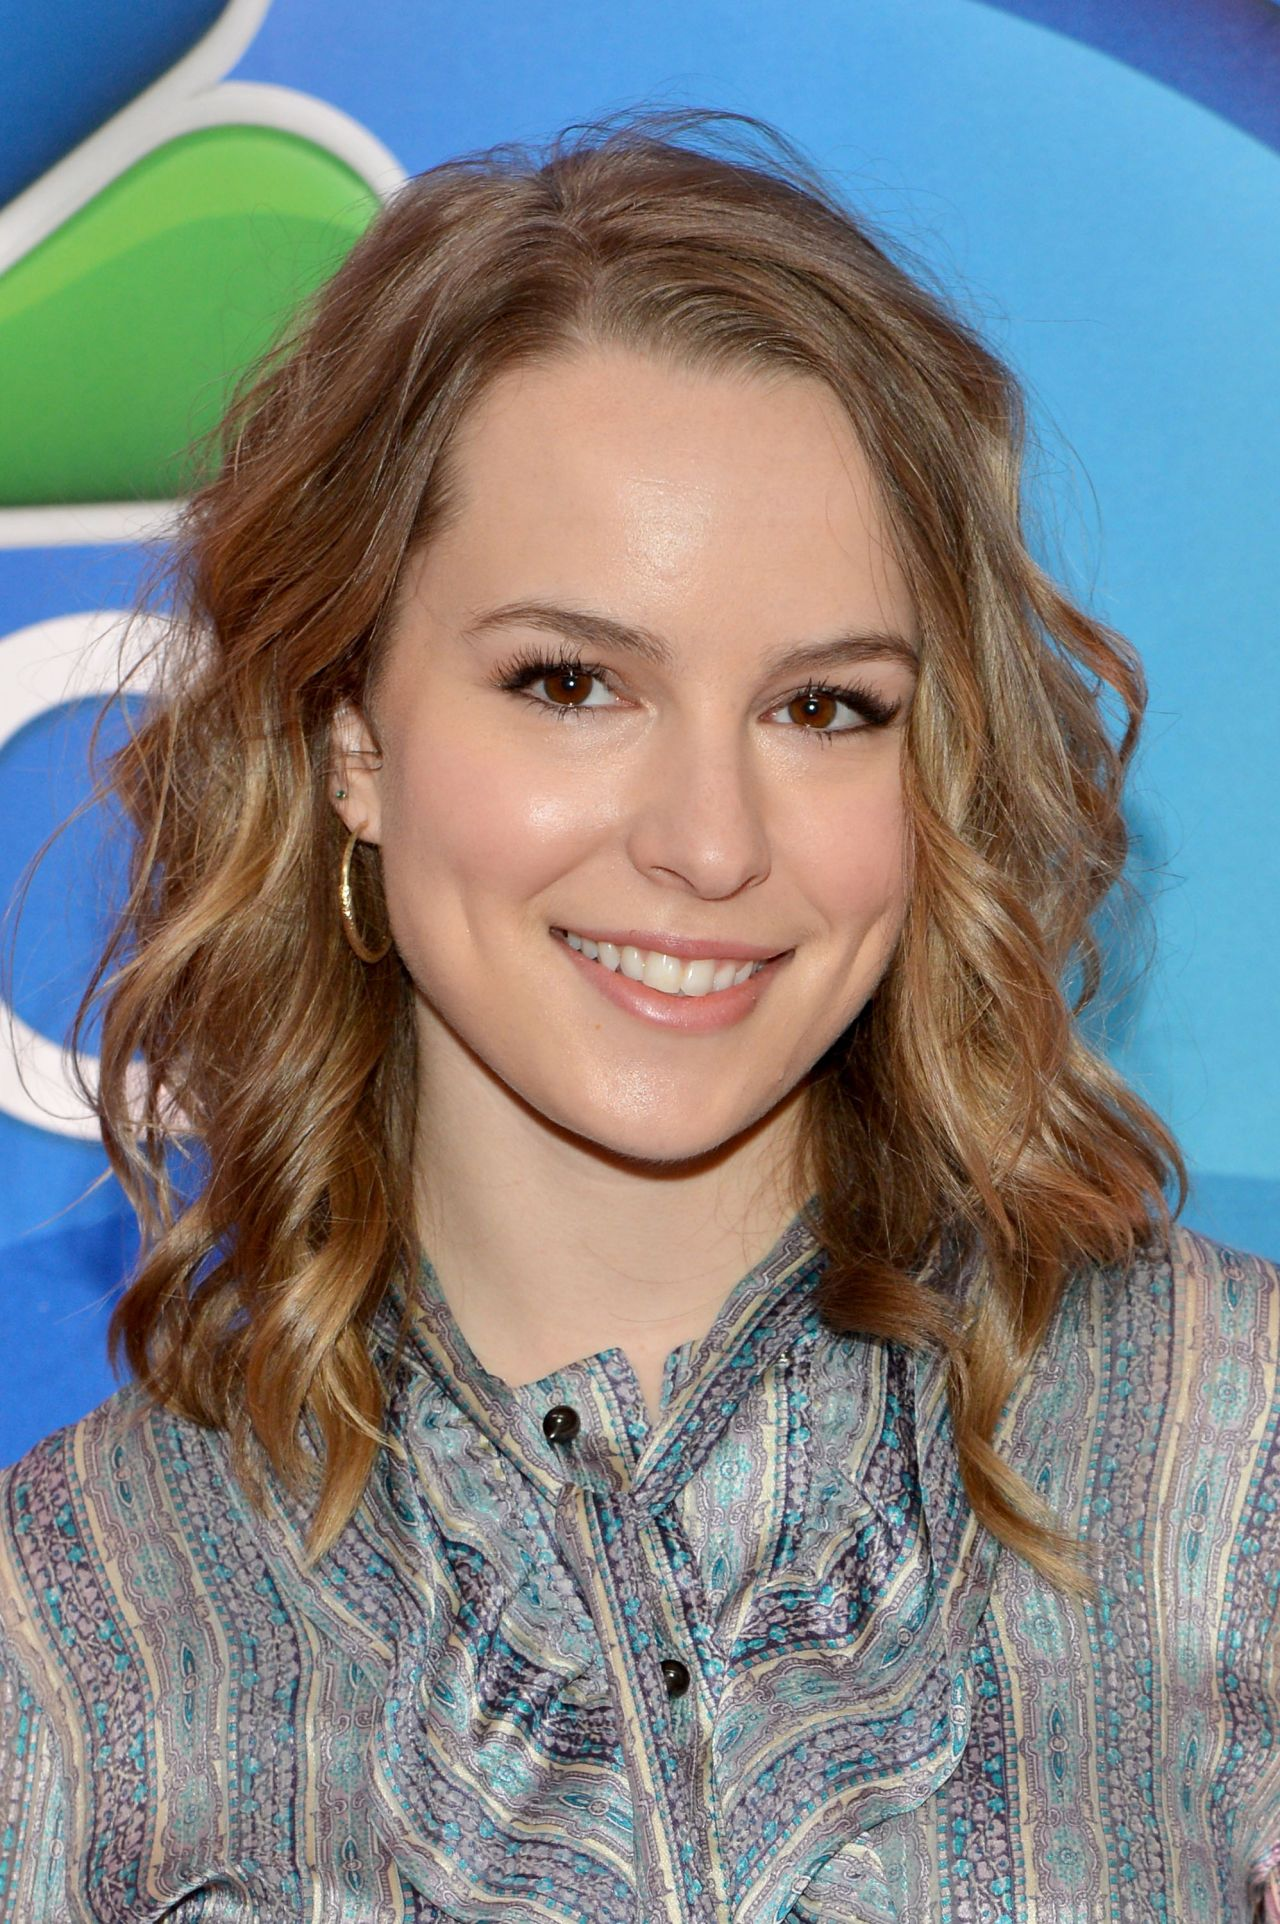 Bridgit Mendler 2015 Nbc Upfront Presentation In New